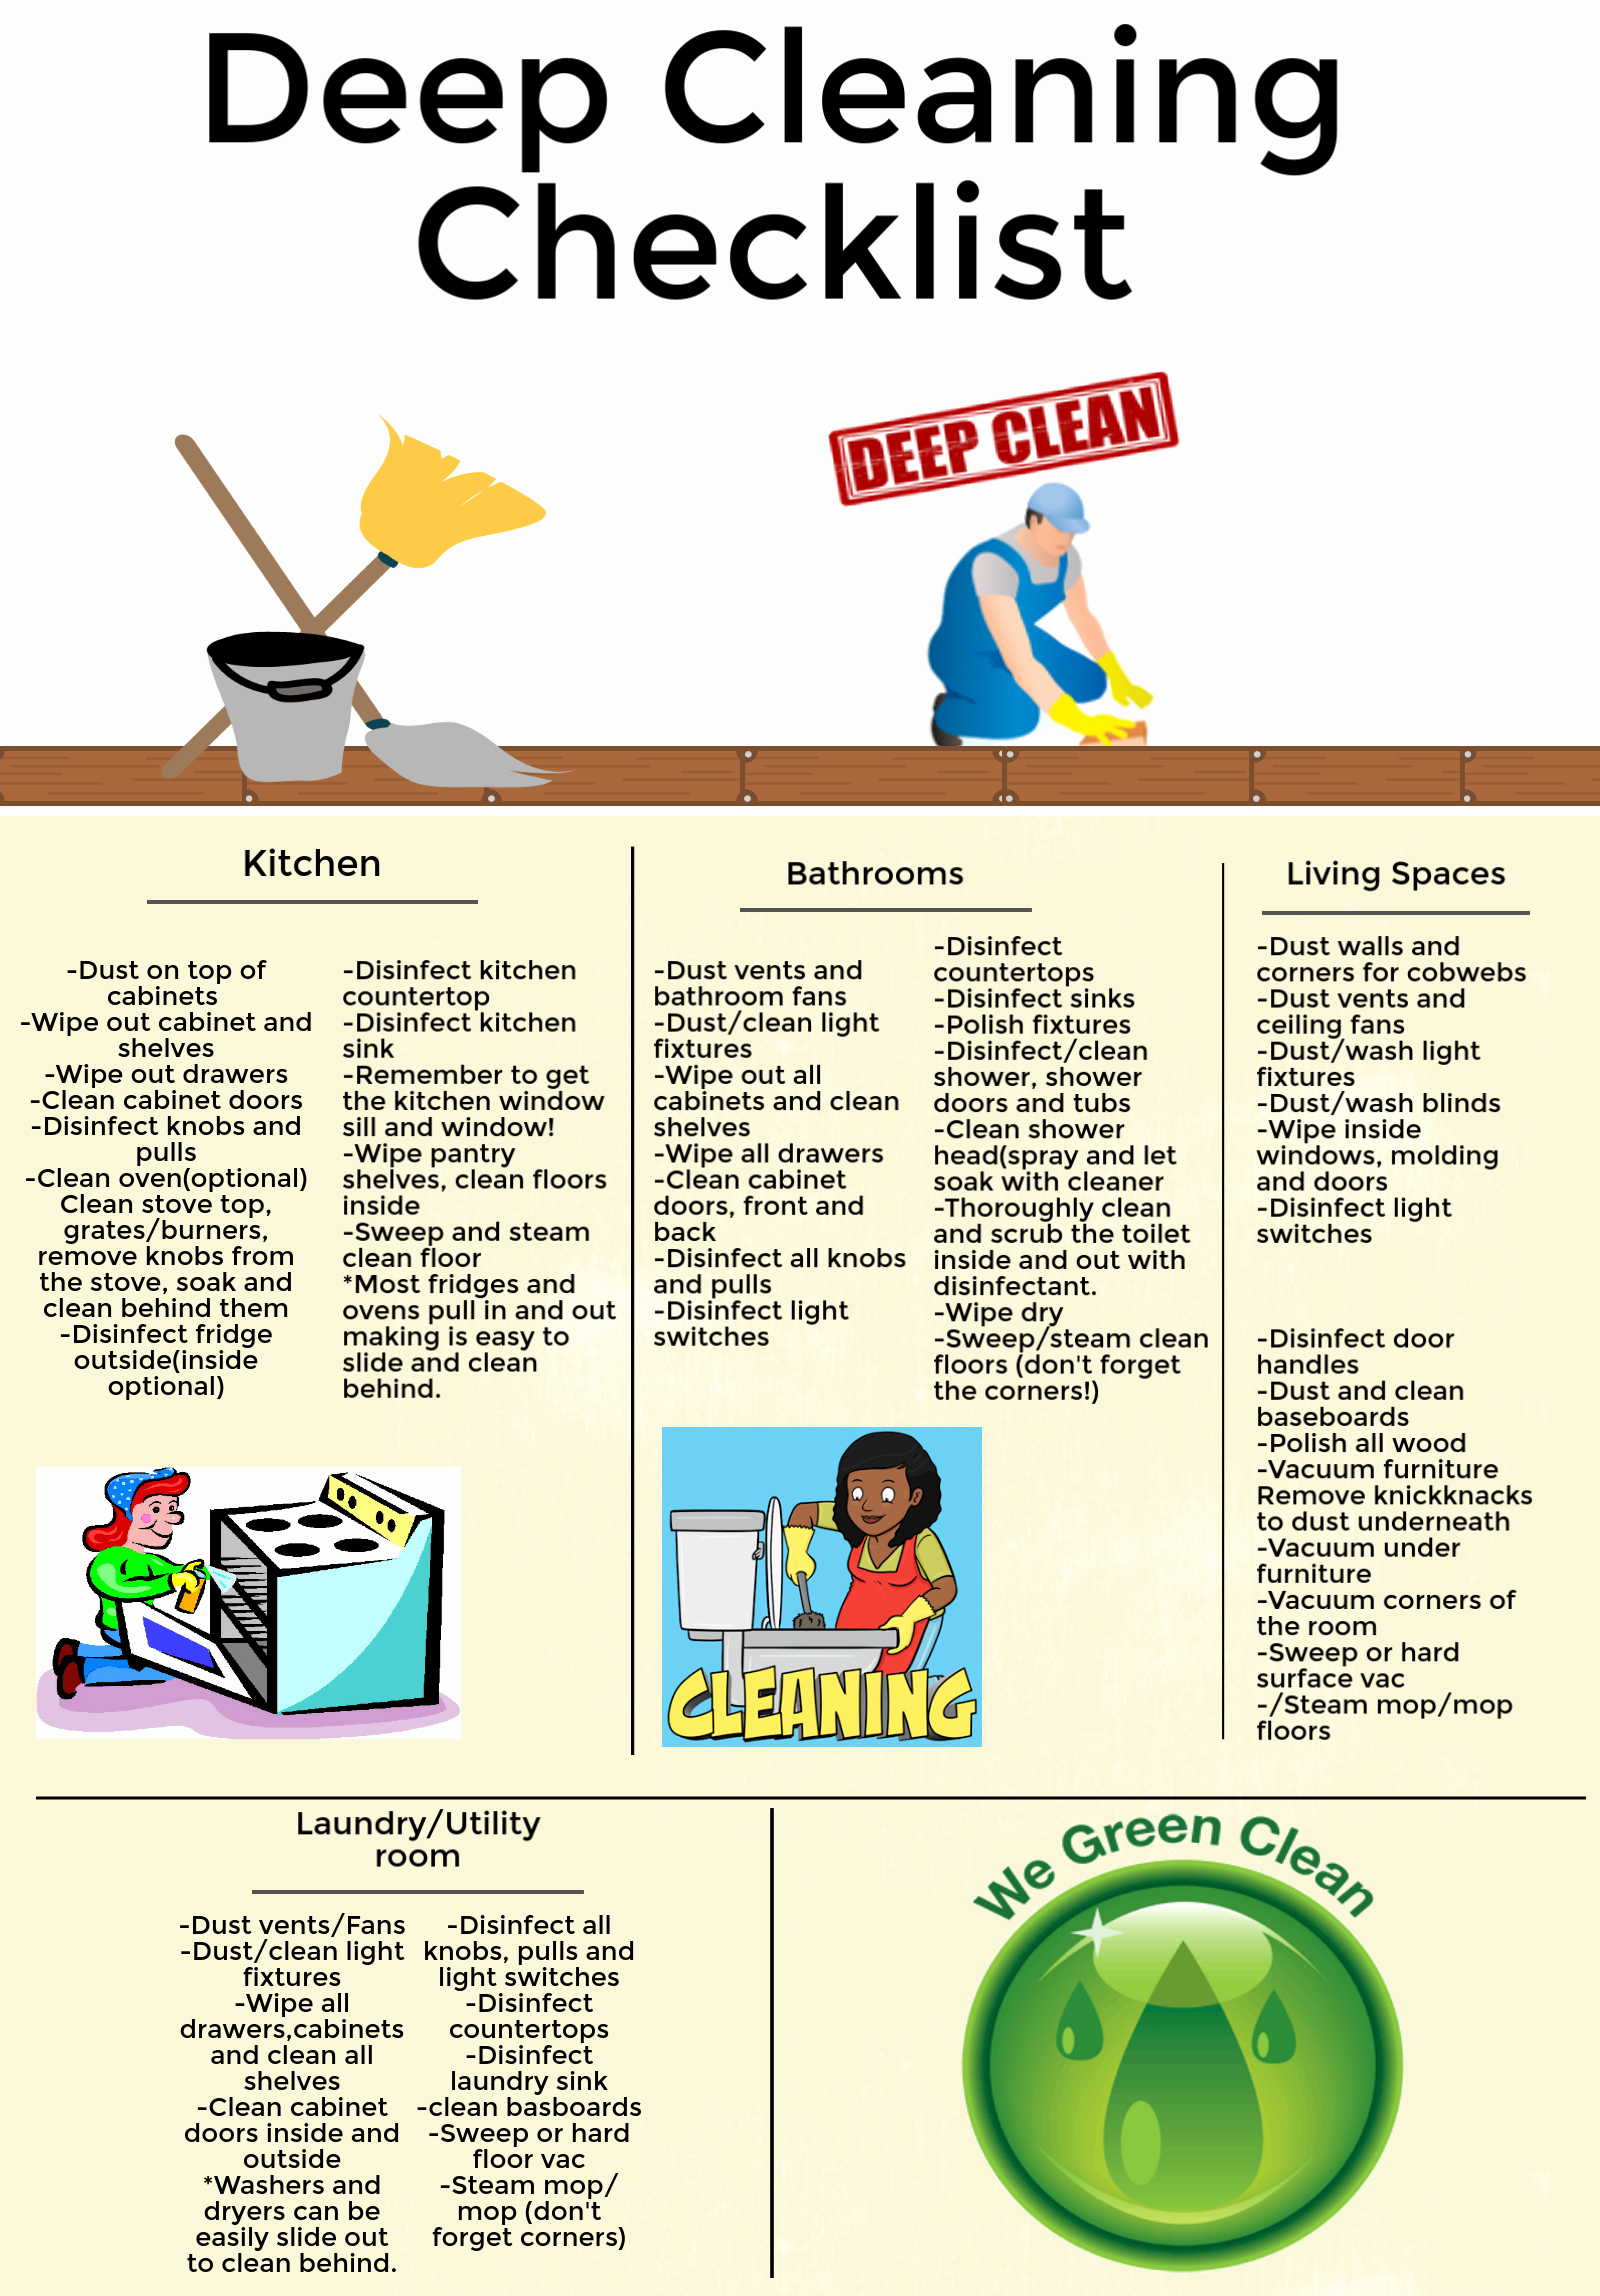 Deep Cleaning Checklist for Housekeeper Elegant What is A Deep Cleaning Pare the Difference